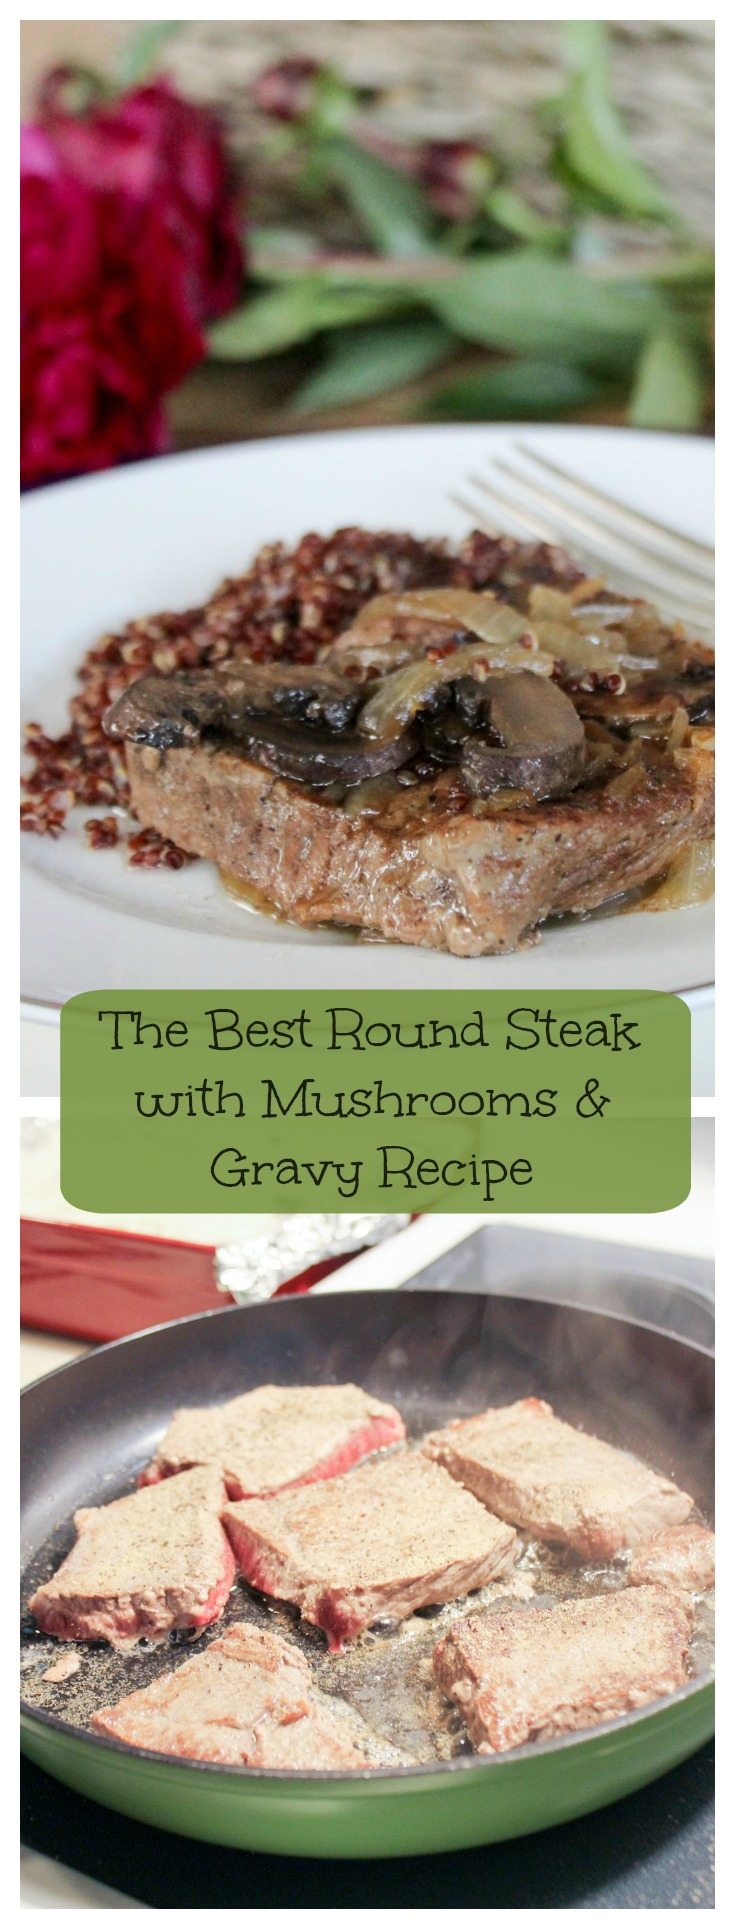 Round Steak with Mushrooms & Gravy Collage text